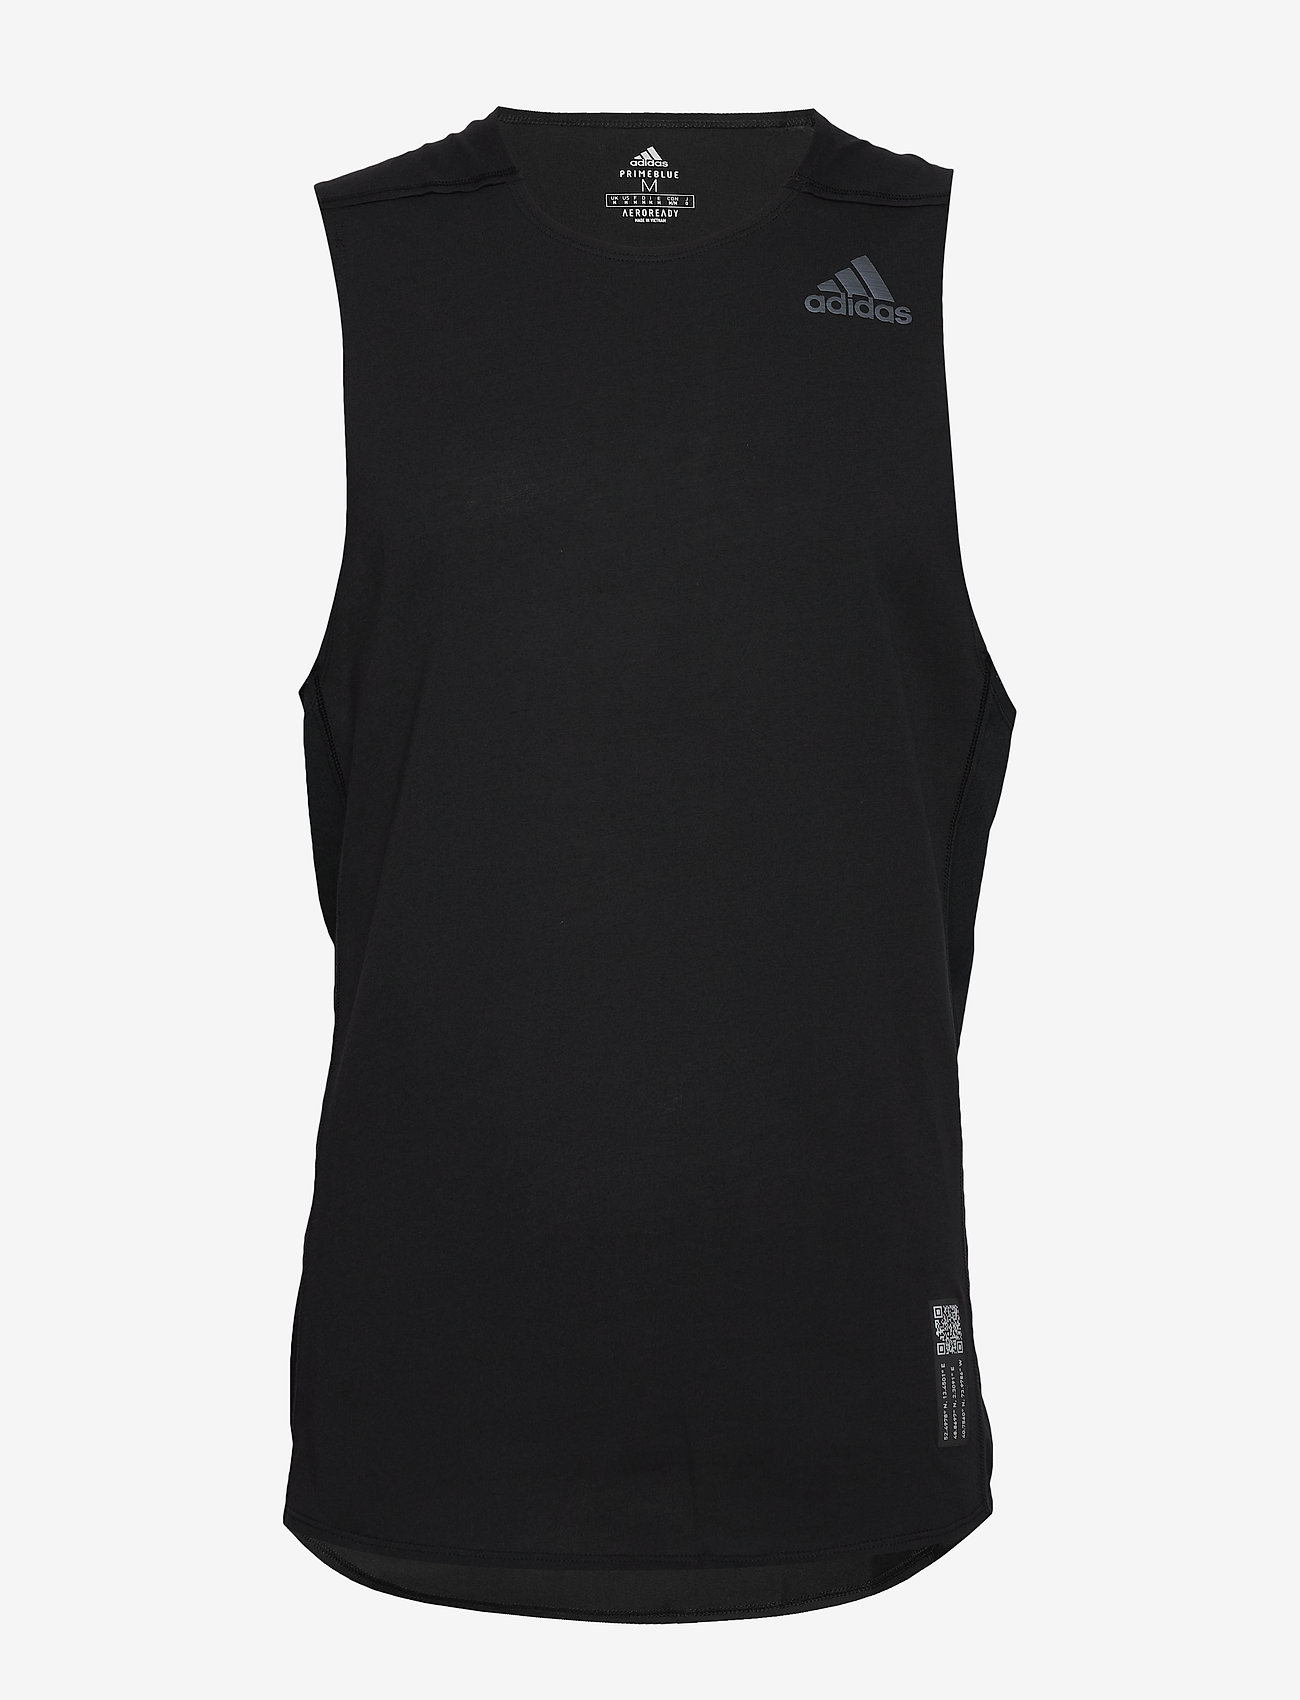 adidas Performance - P.BLUE SINGLET - tank tops - black - 0